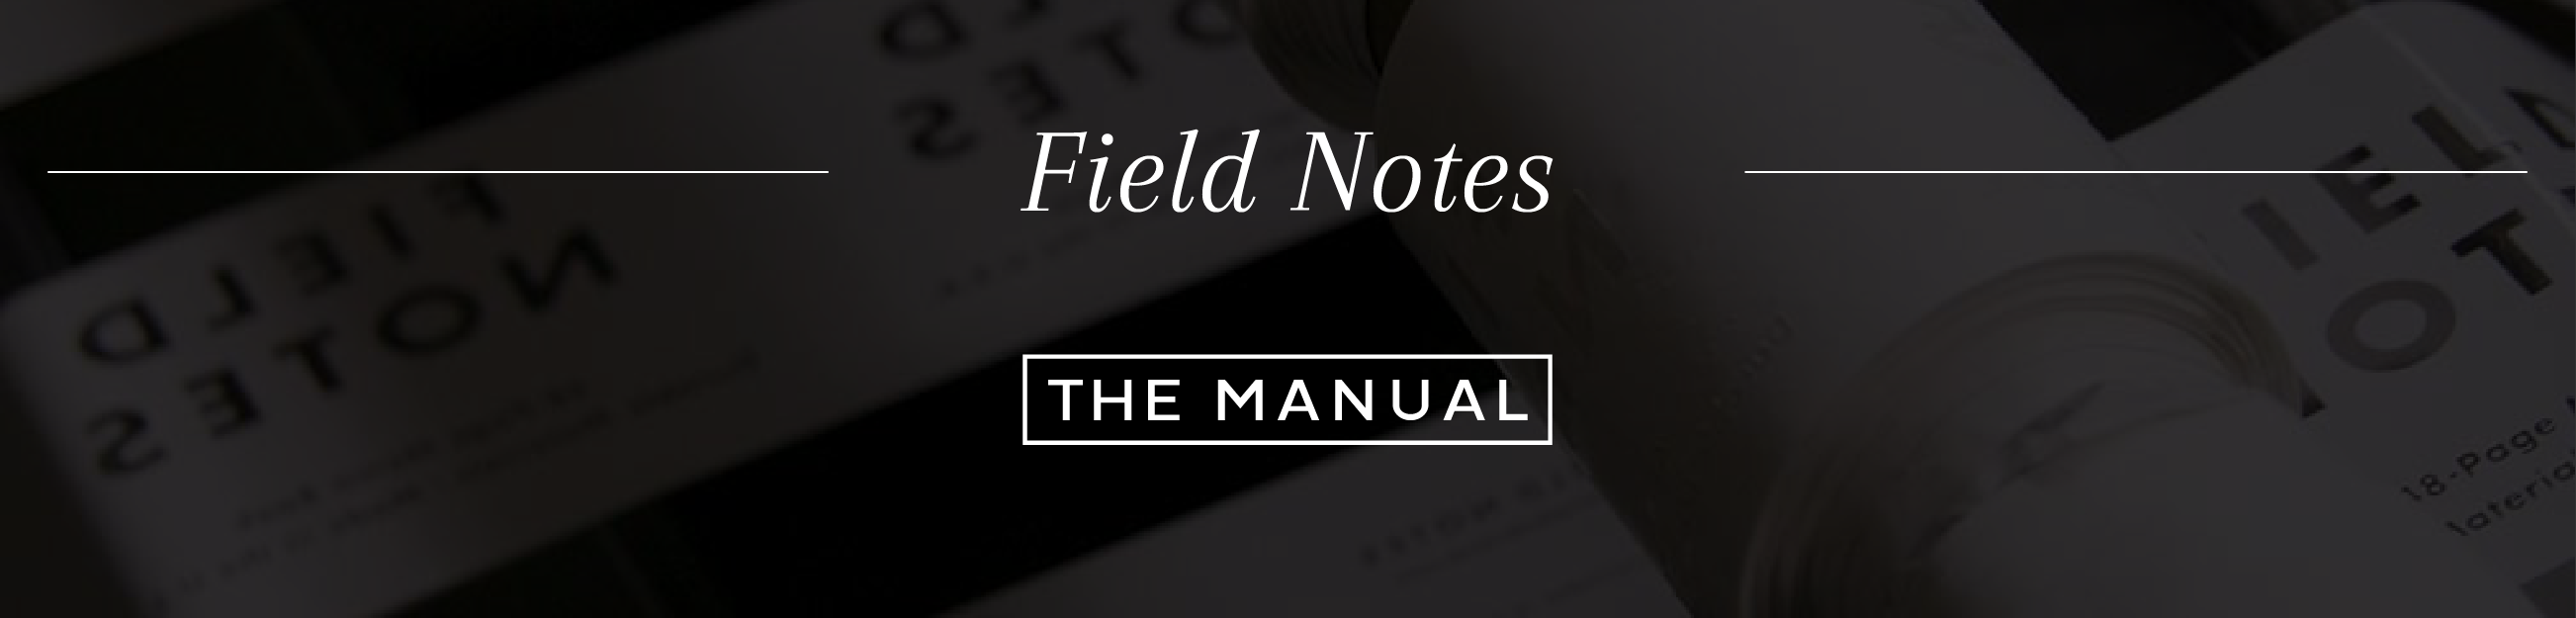 Field Notes Press